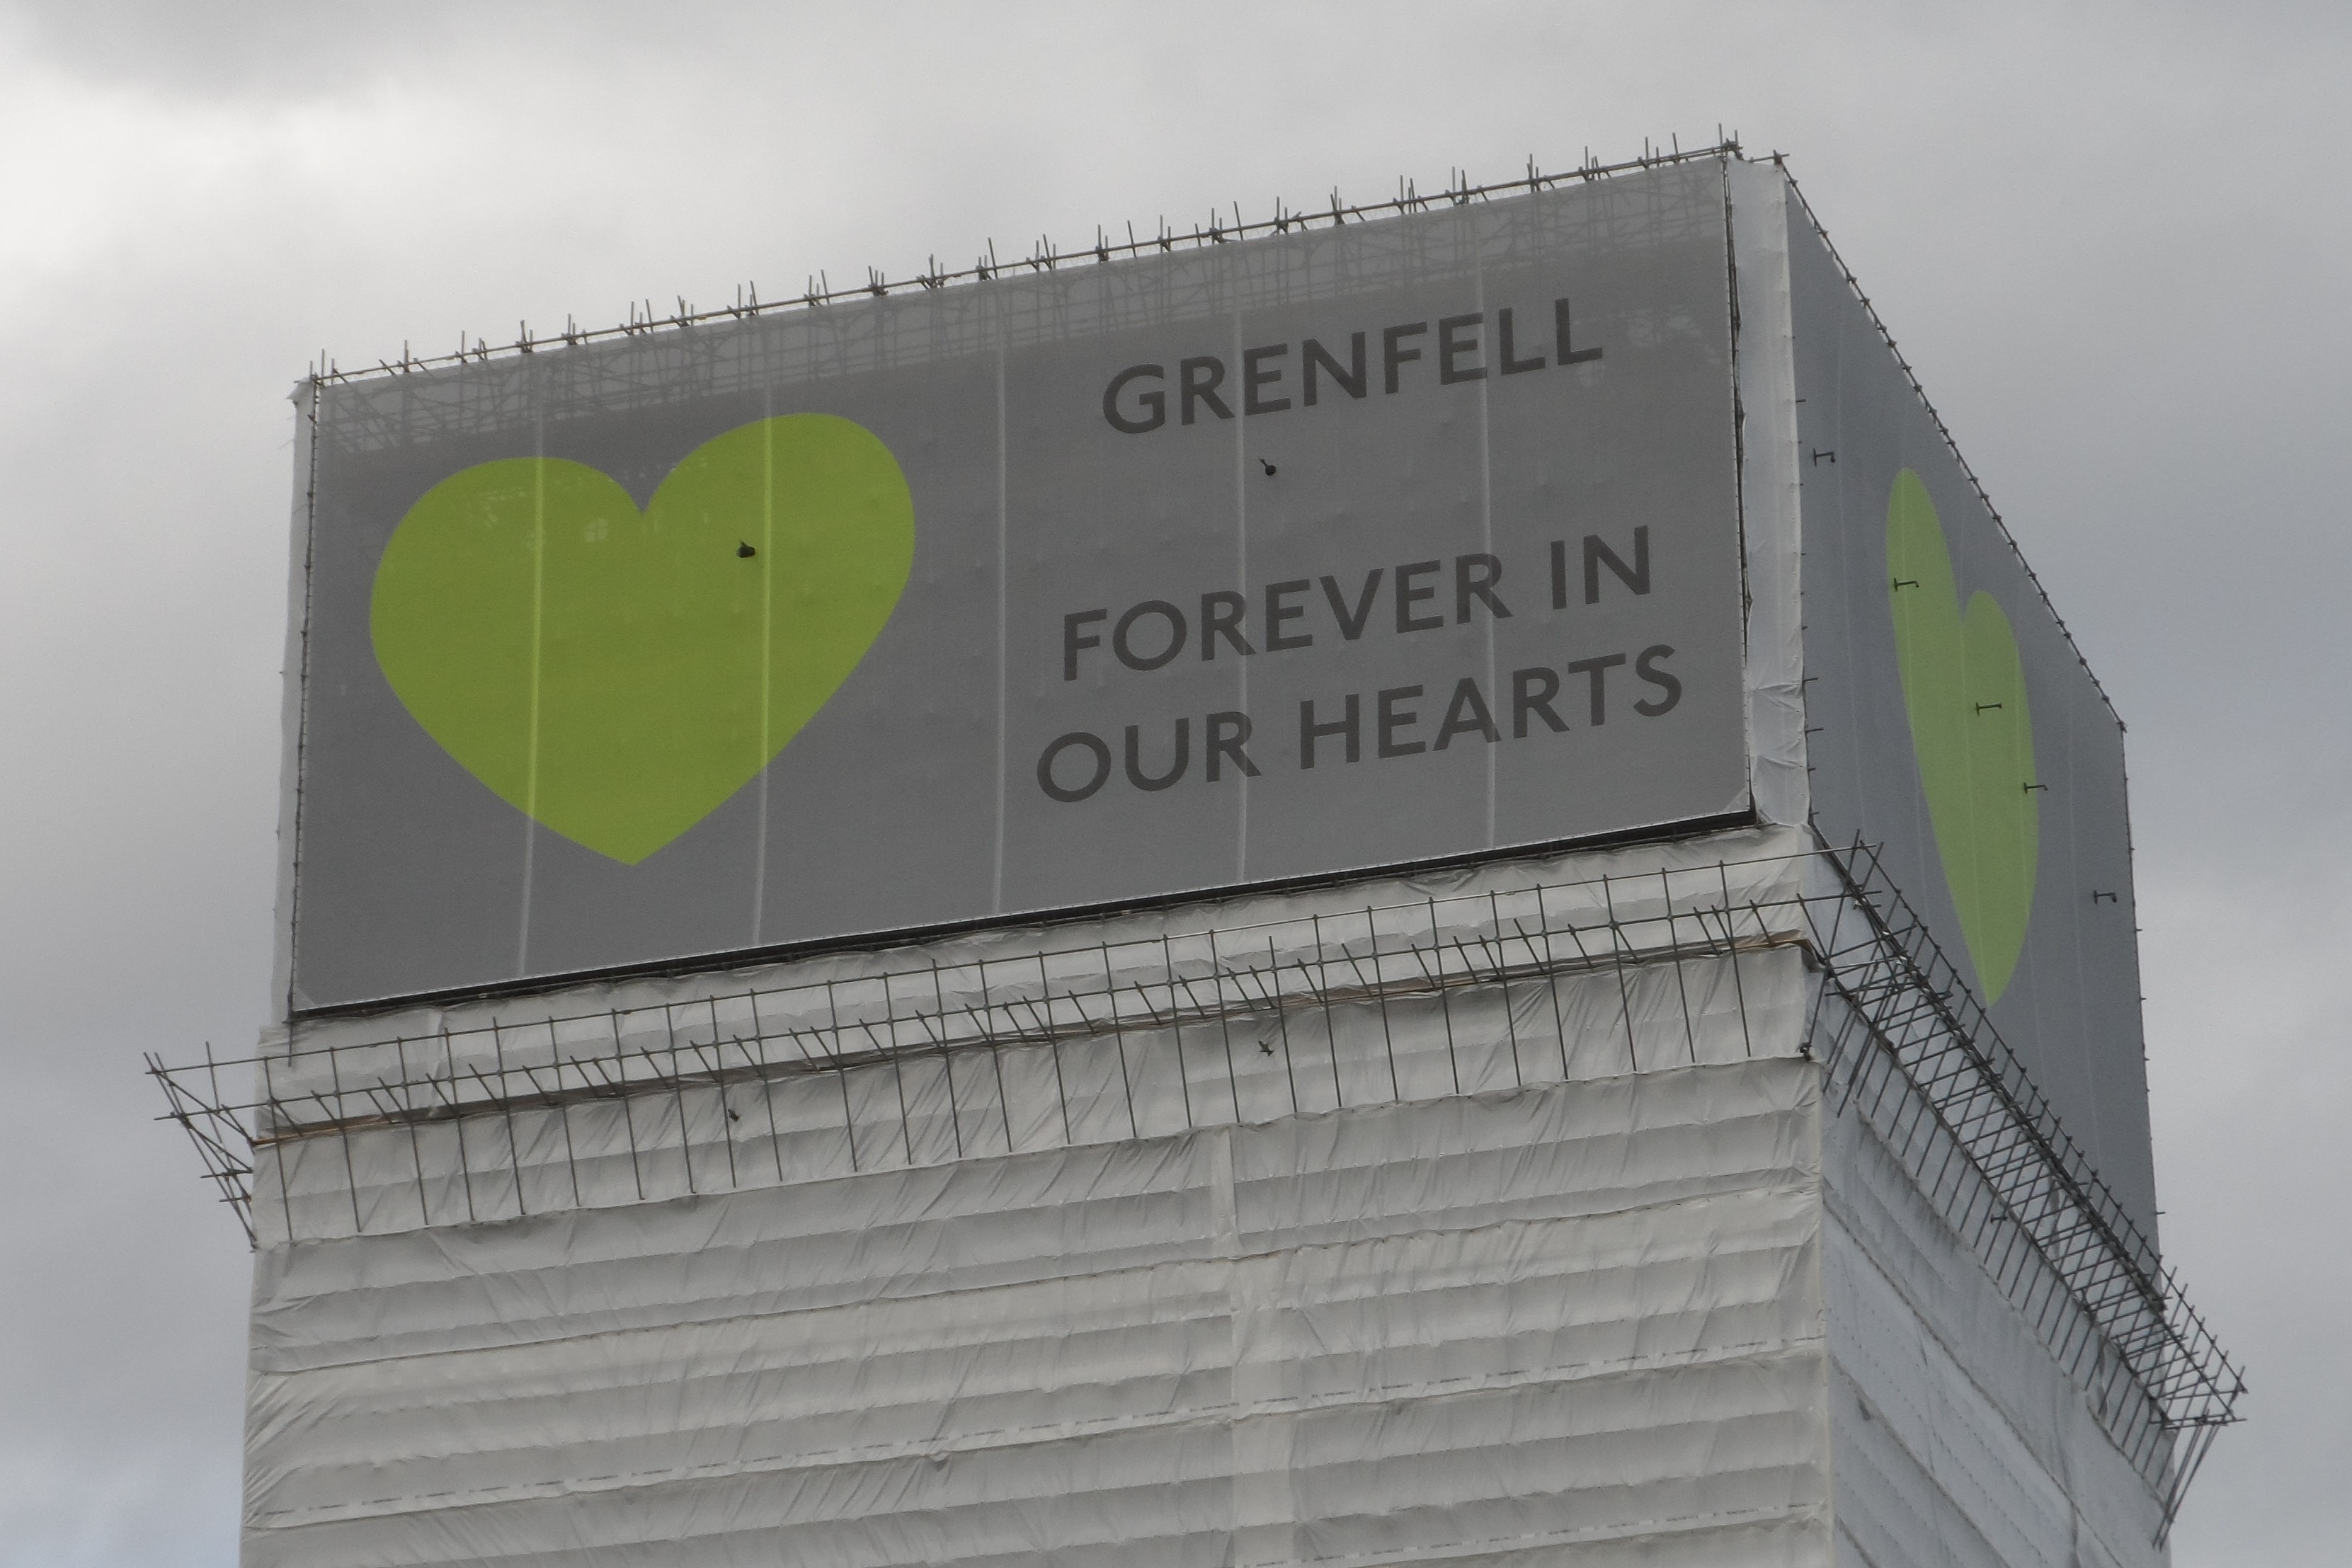 Grenfell has shown us there is a legal, political and moral imperative to provide universal safe housing